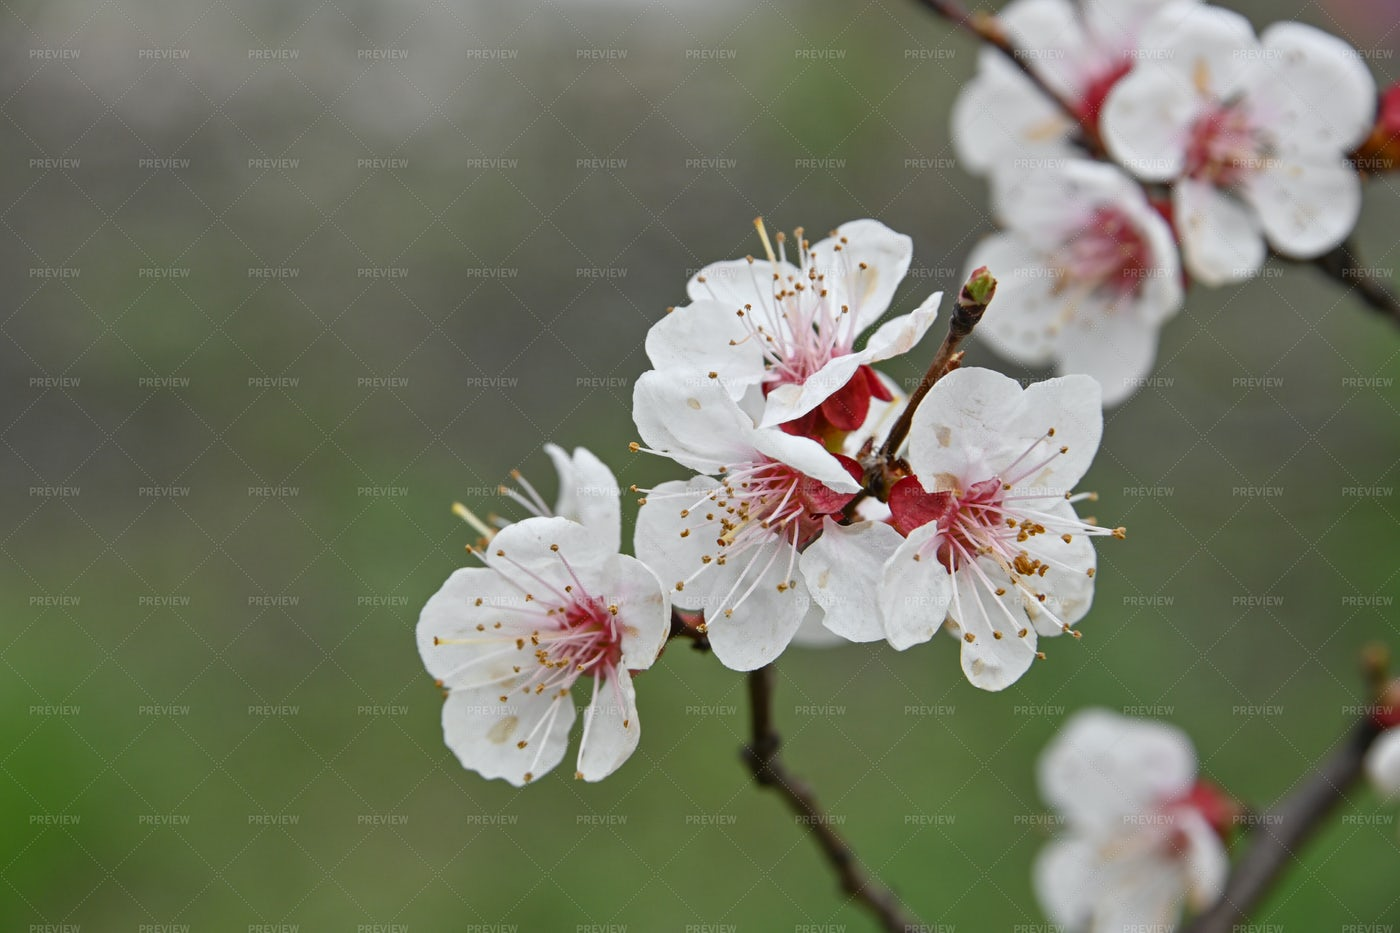 White Cherry Blossoms Over Green: Stock Photos